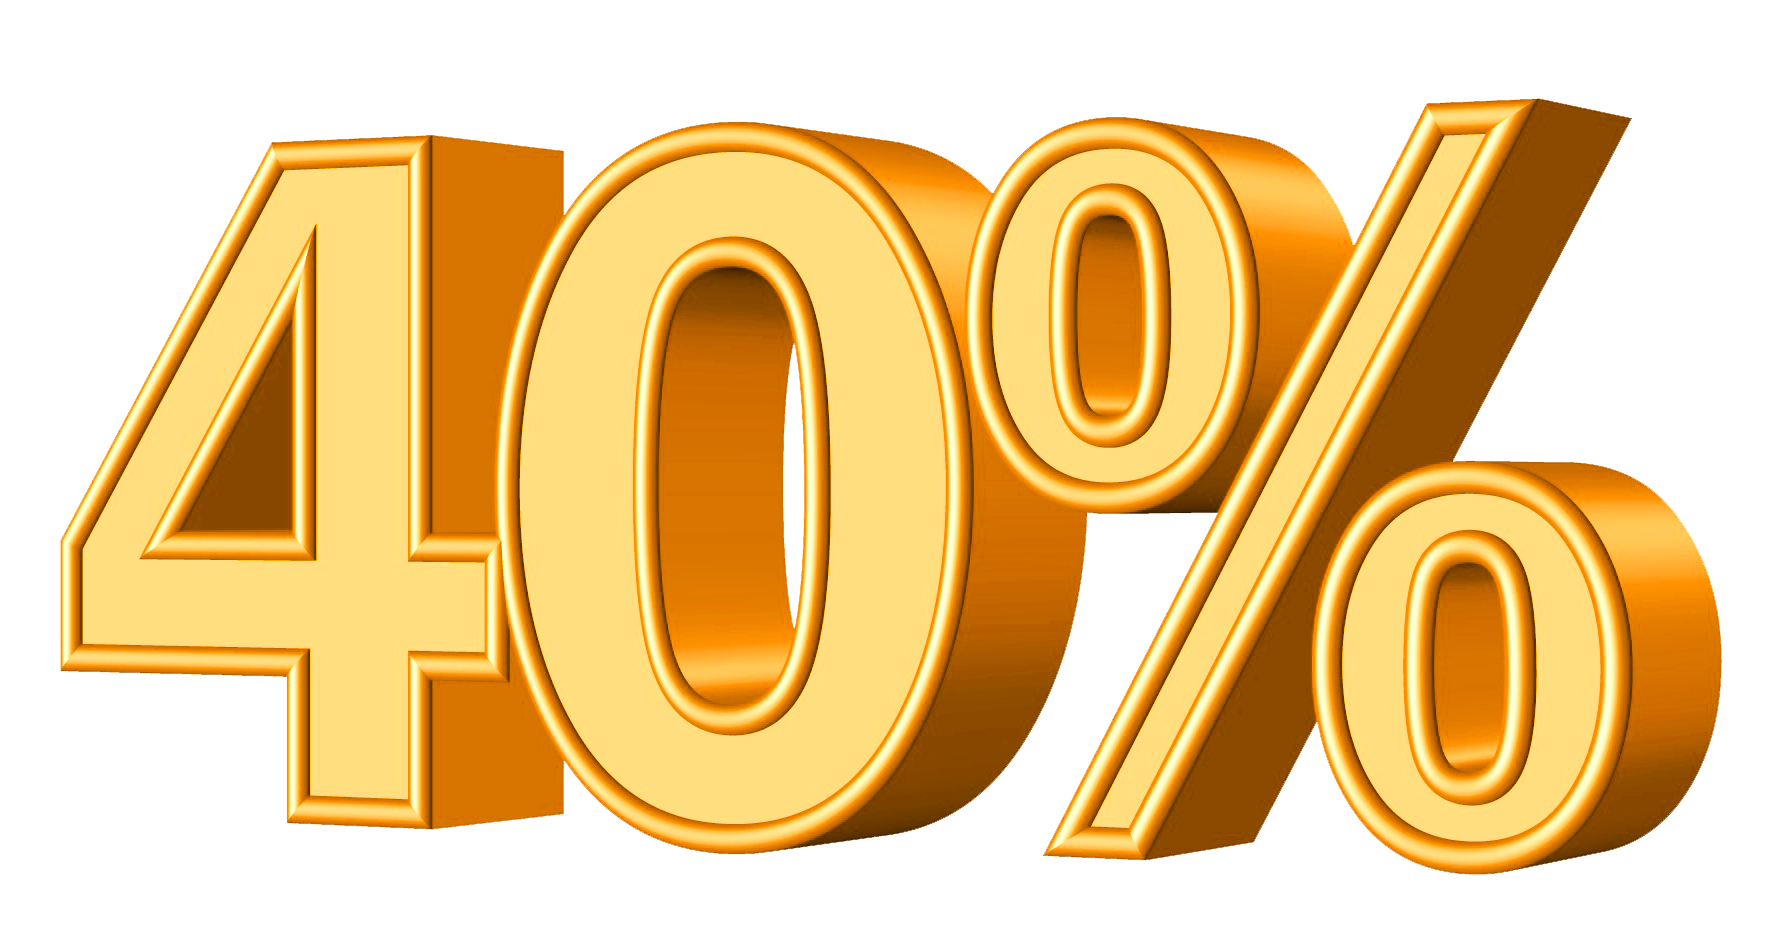 Sale clipart special. Offer png image pngpix